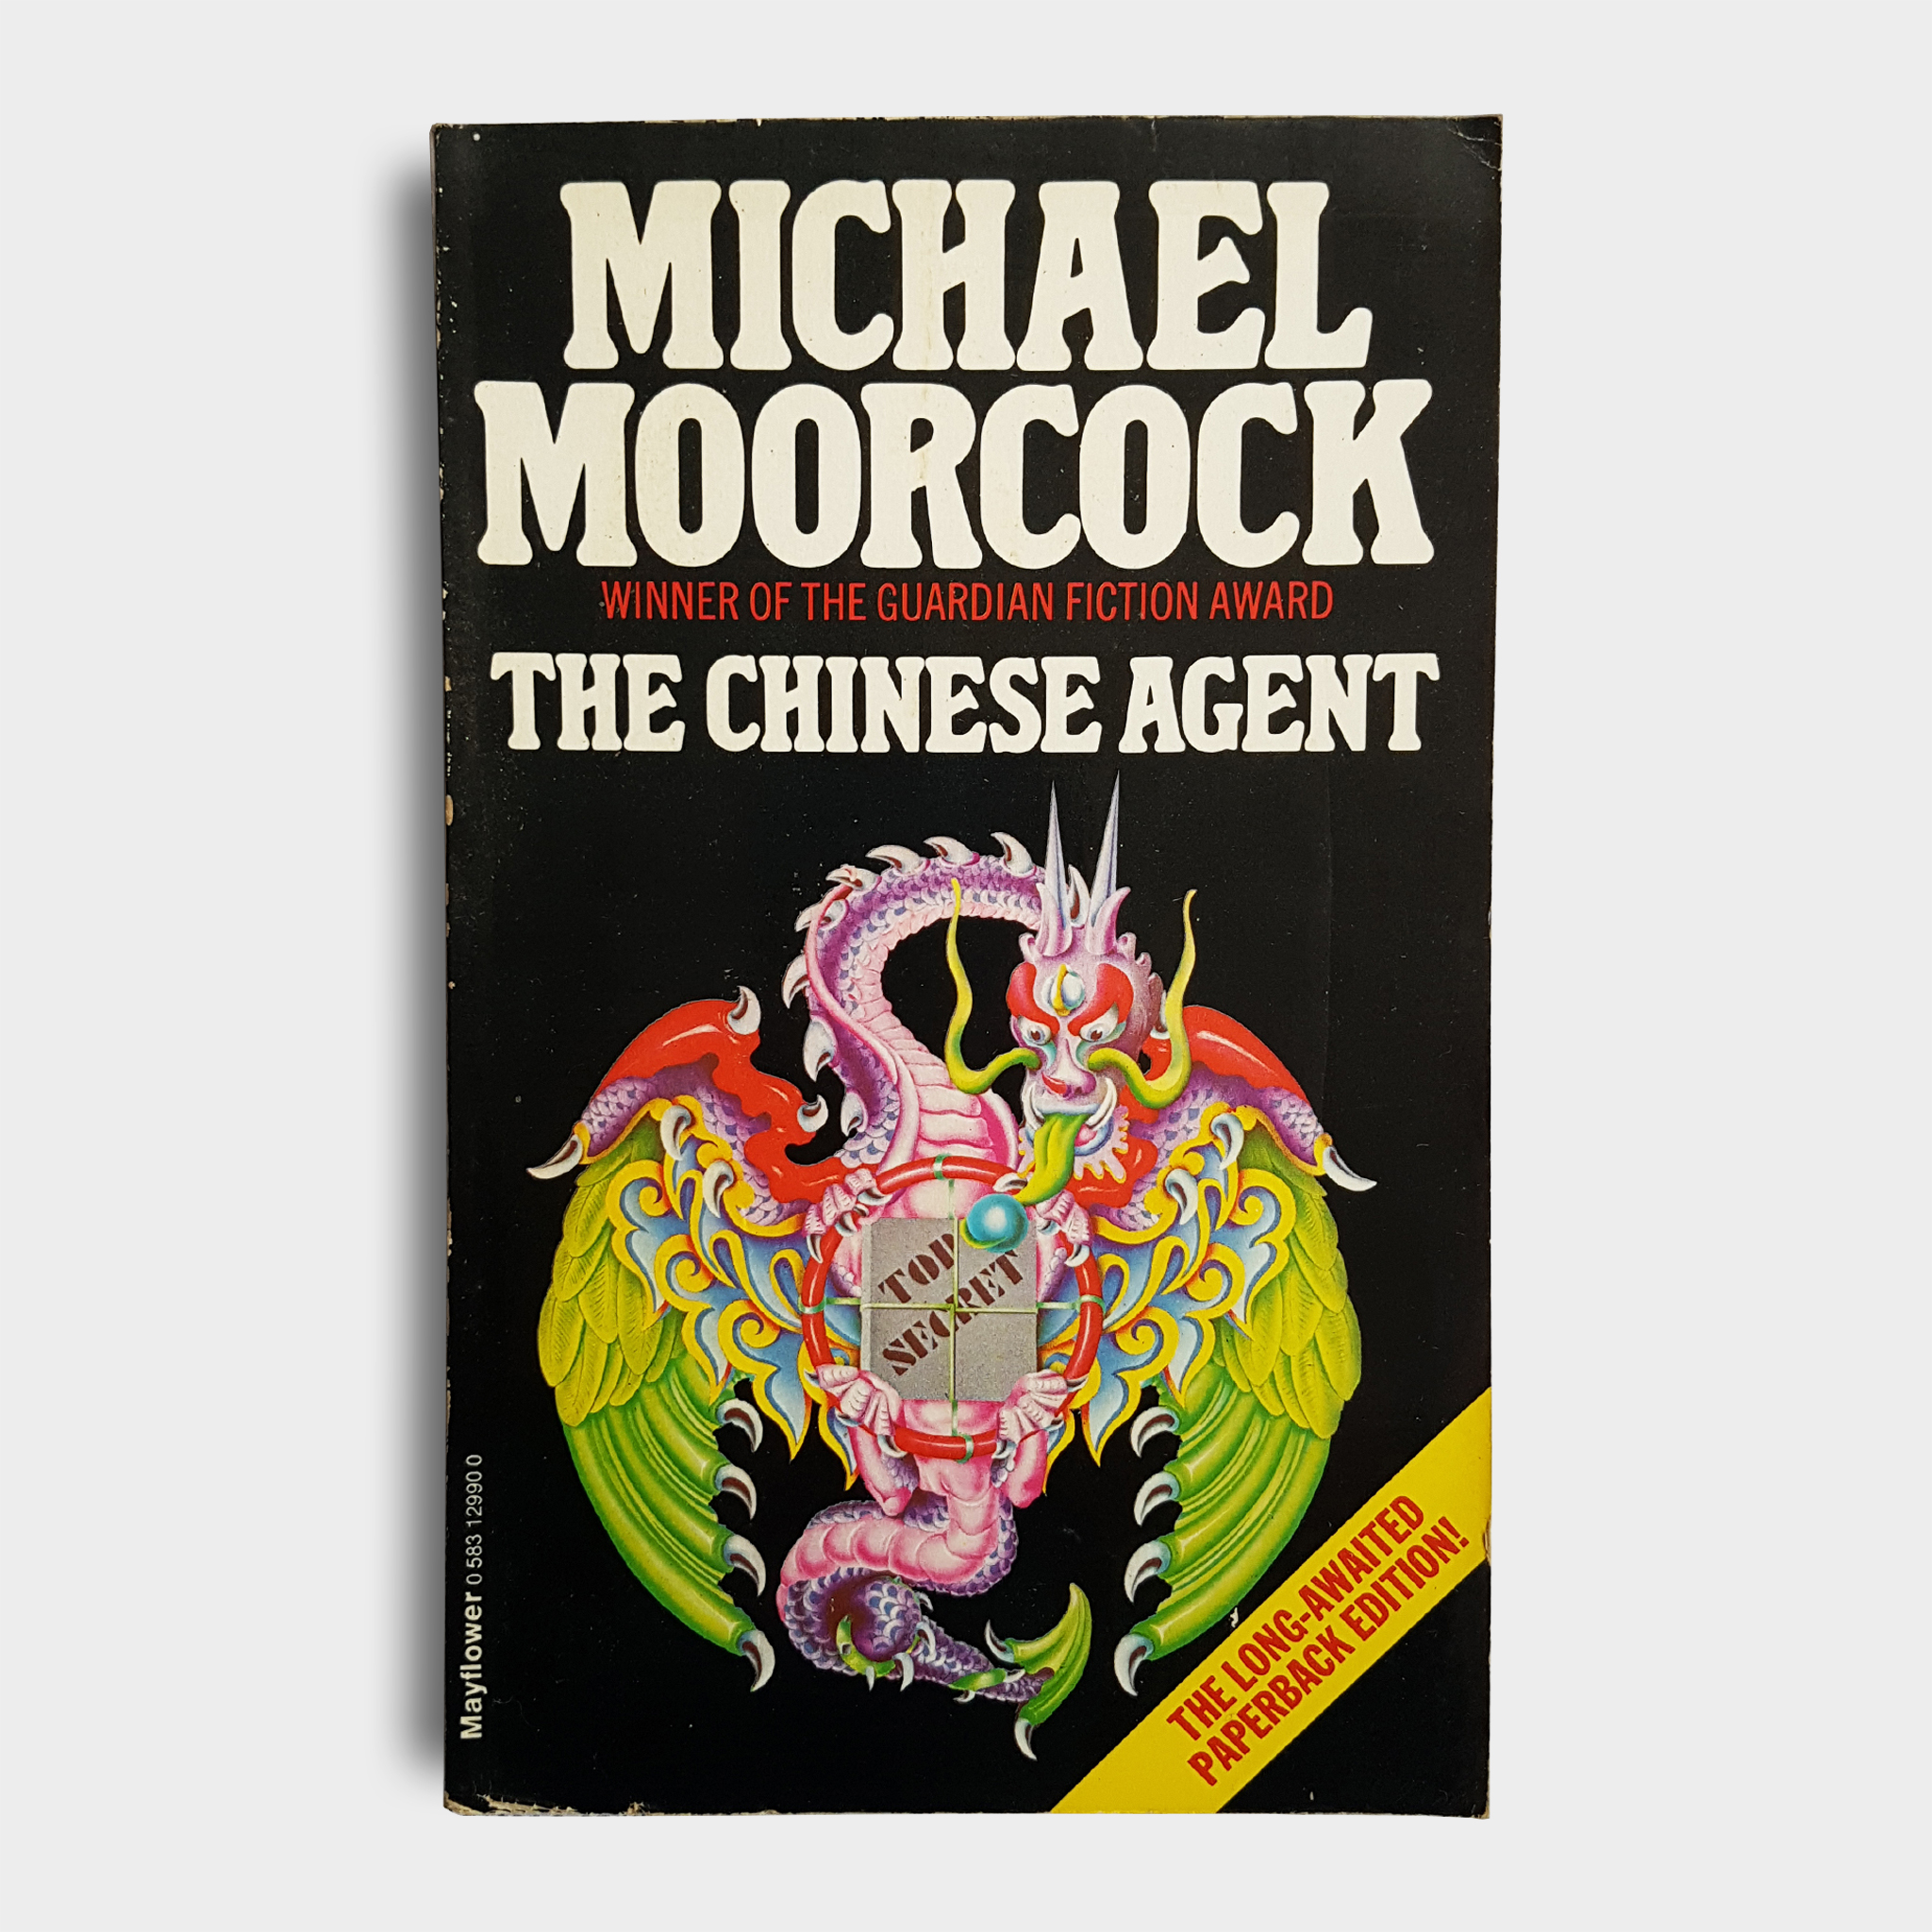 Michael Moorcock - The Chinese Agent